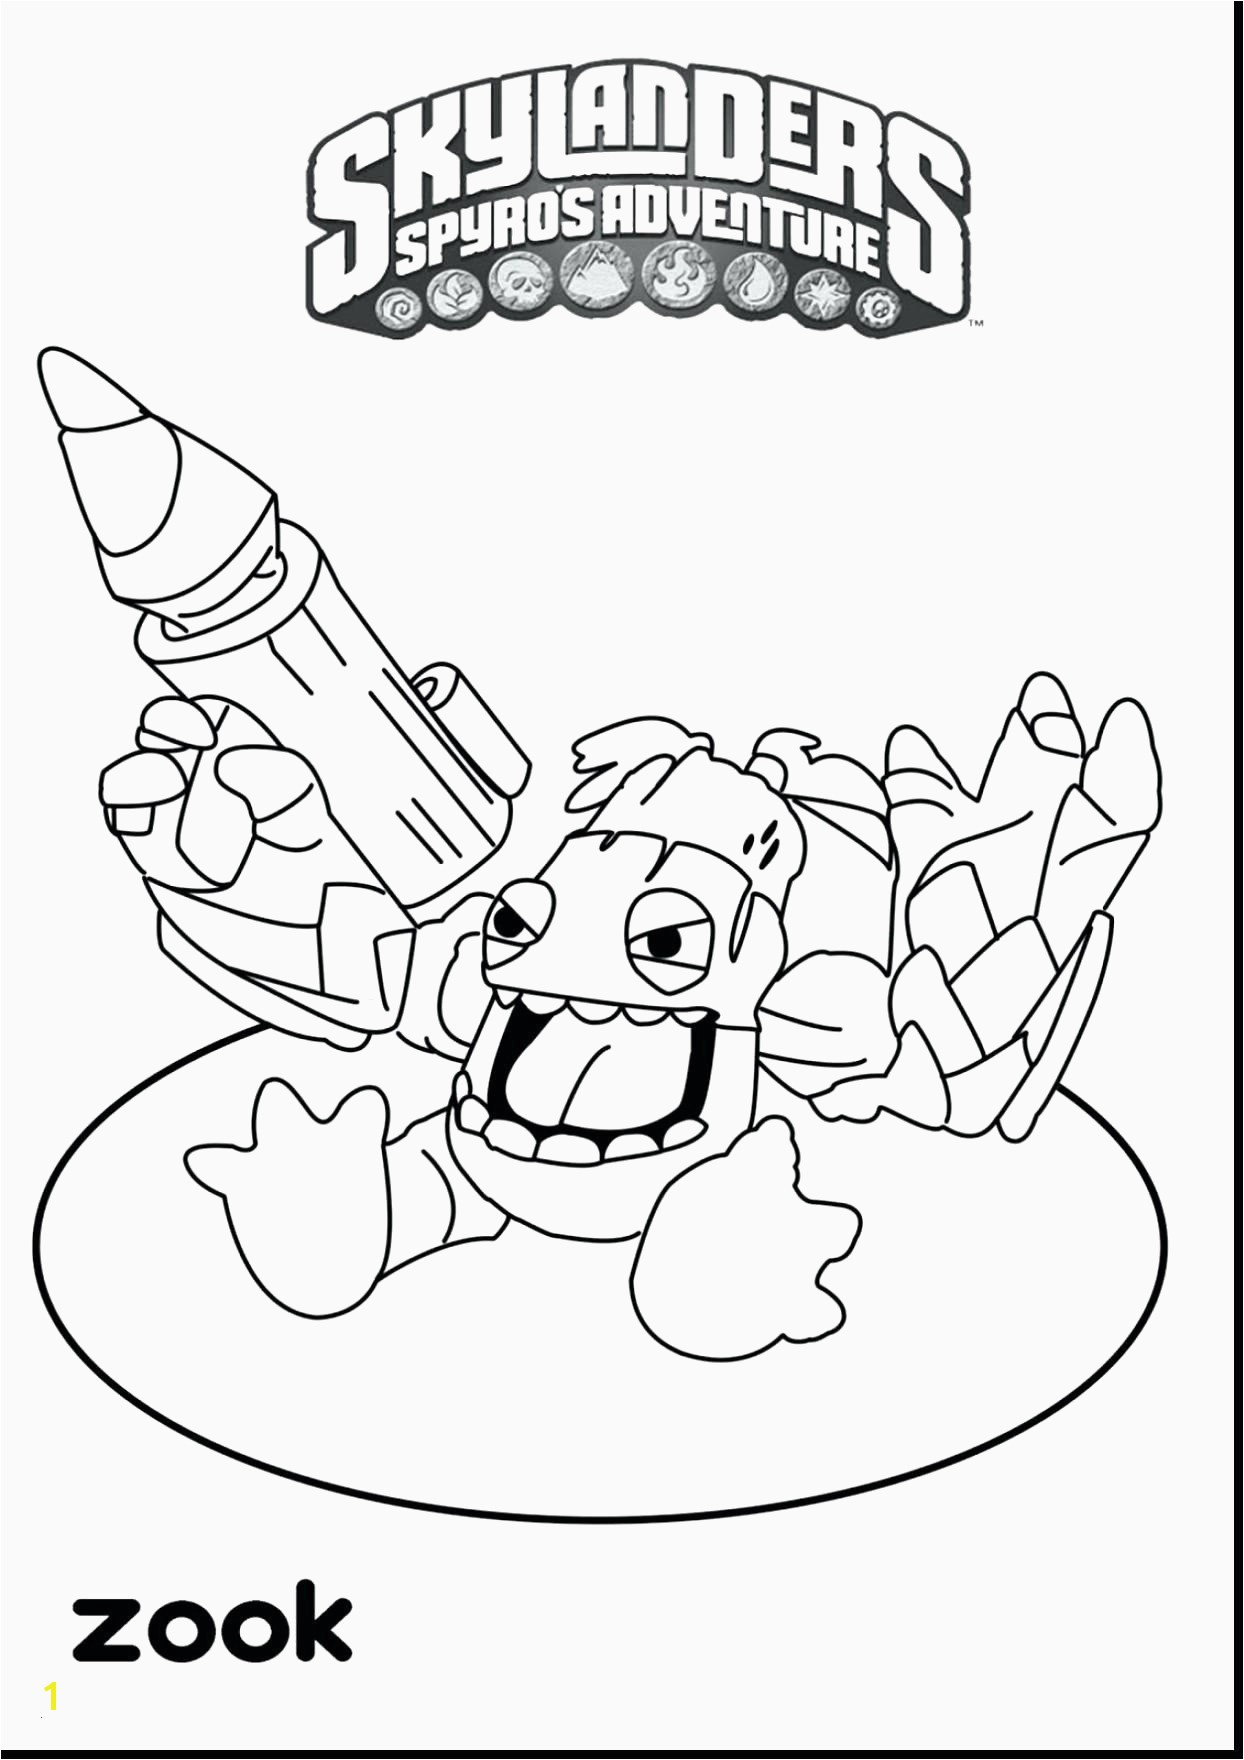 democraciaejustica camping coloring pages fresh stylish girl scout coloring pages letramac